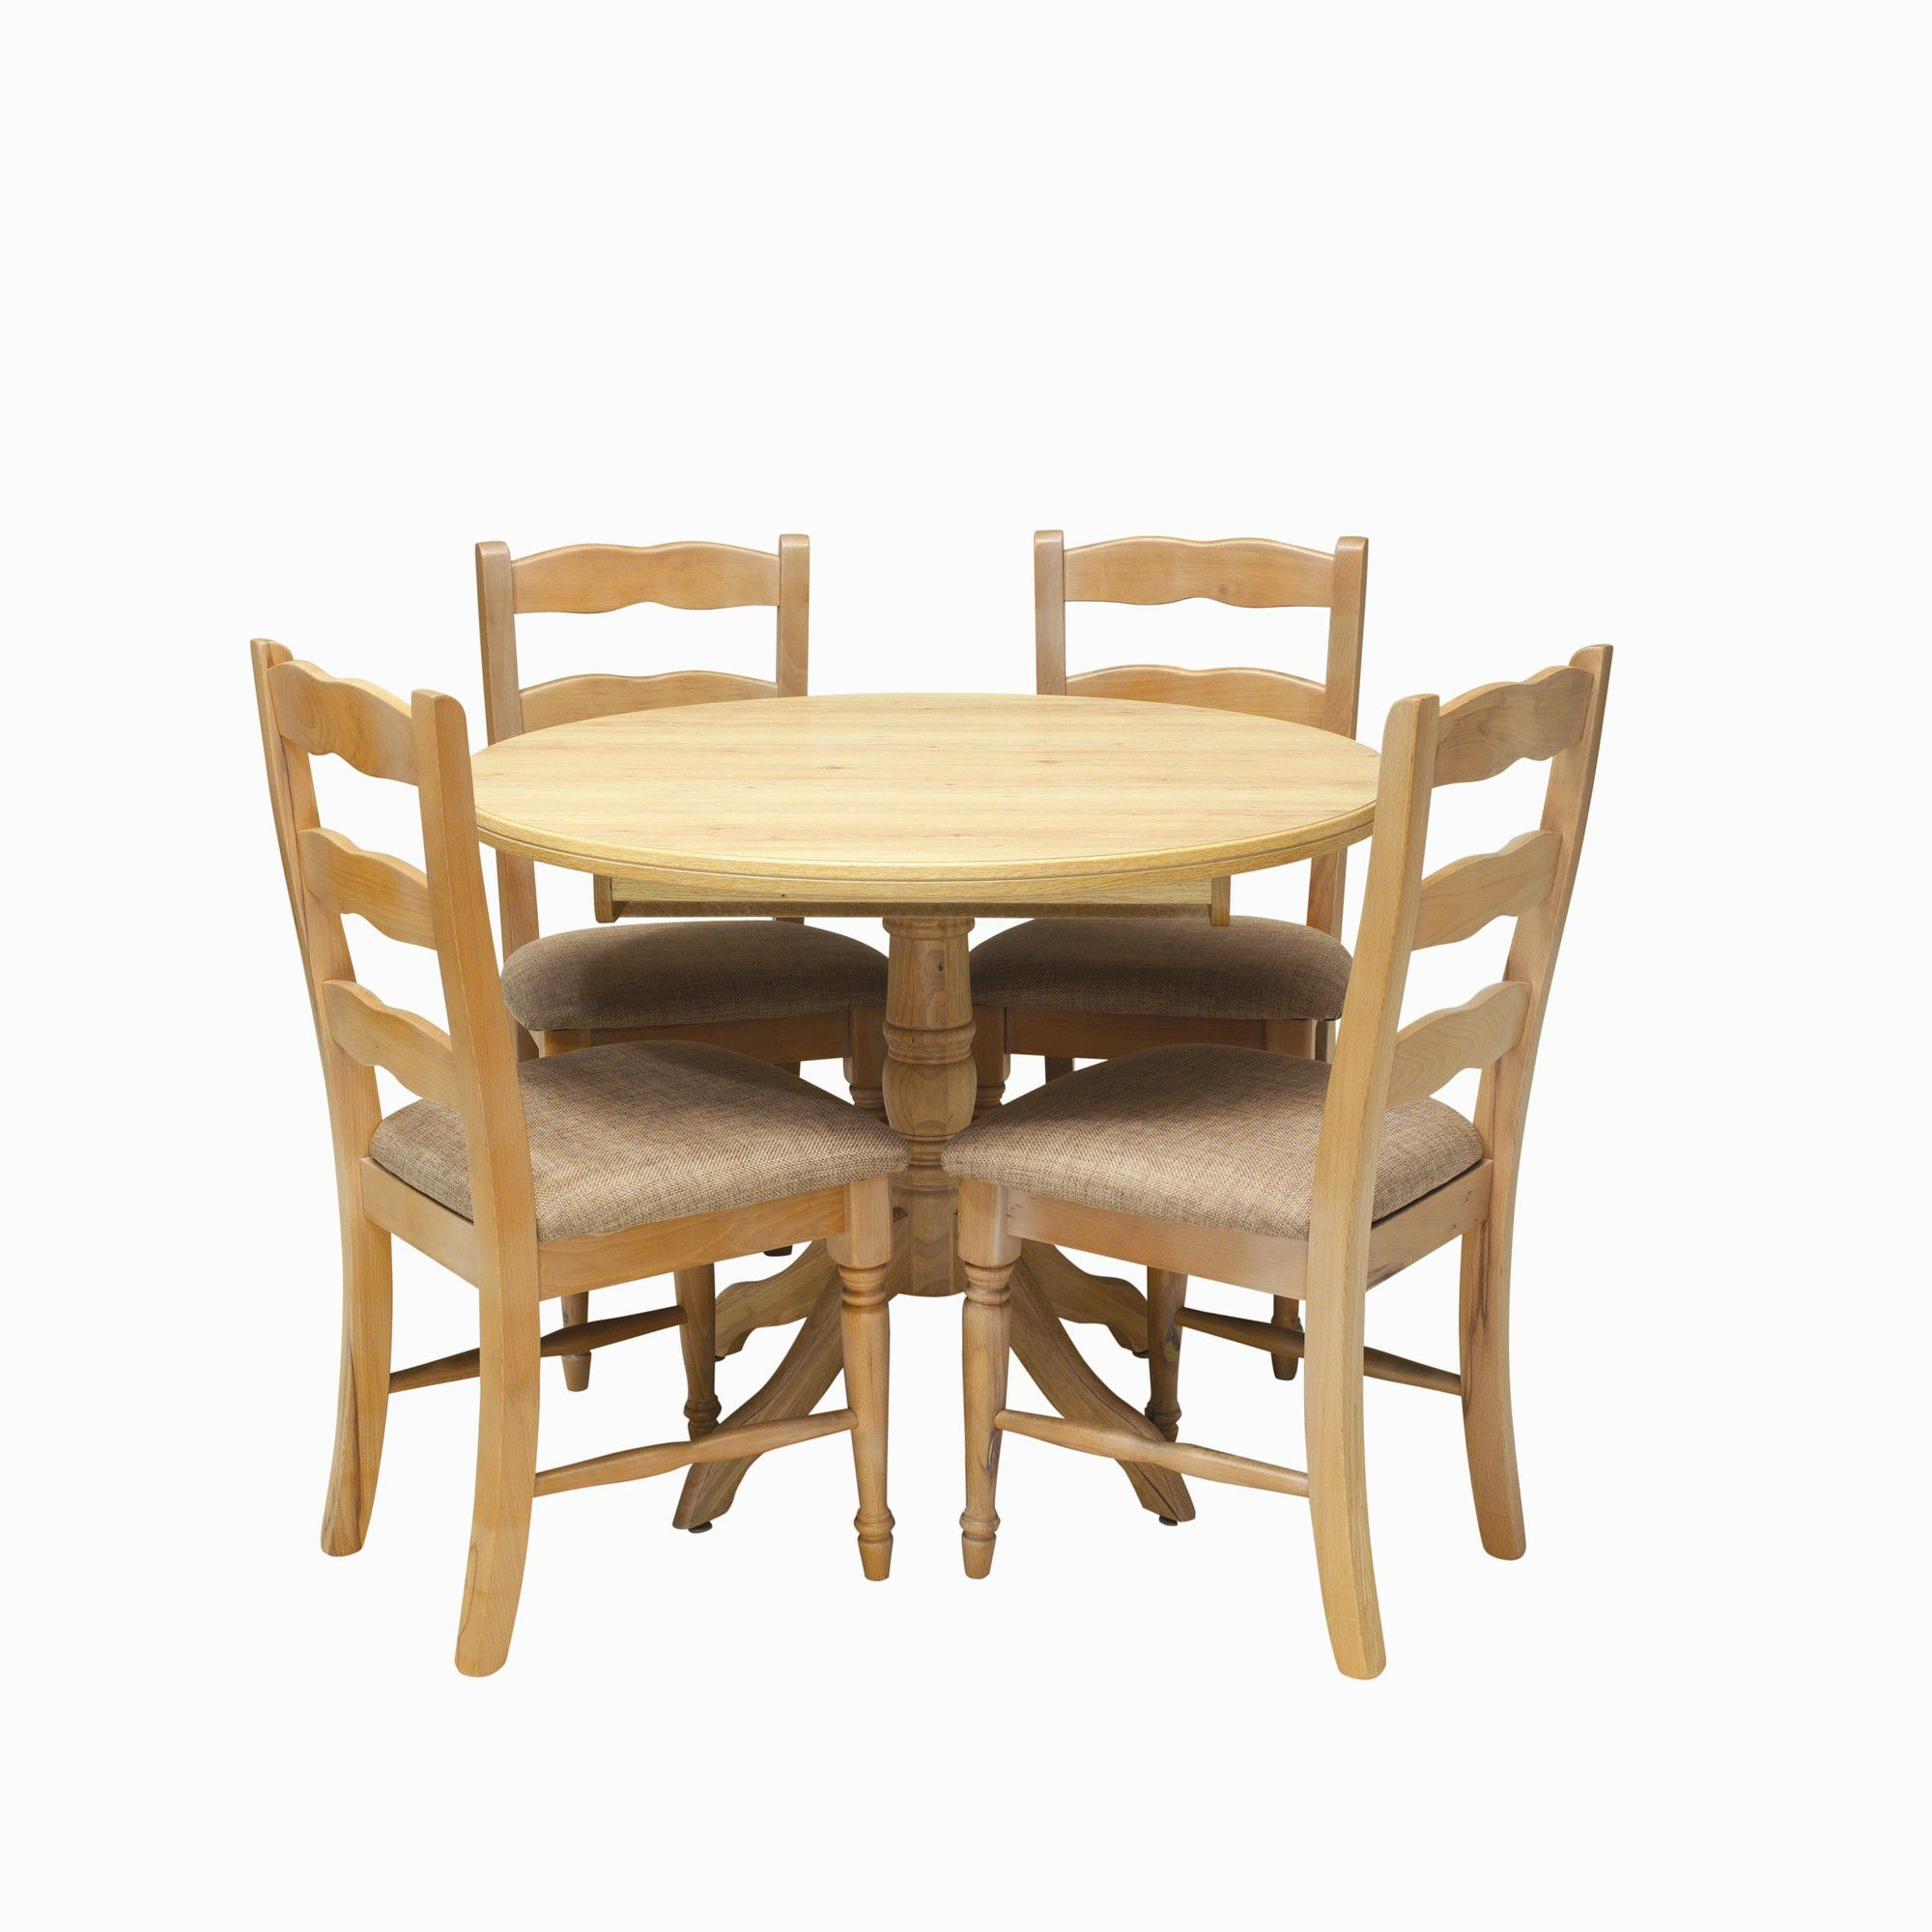 Caxton Driftwood Round Extending Dining Set with 4 Ladder Back Chairs in Limed Oak at Tesco Direct